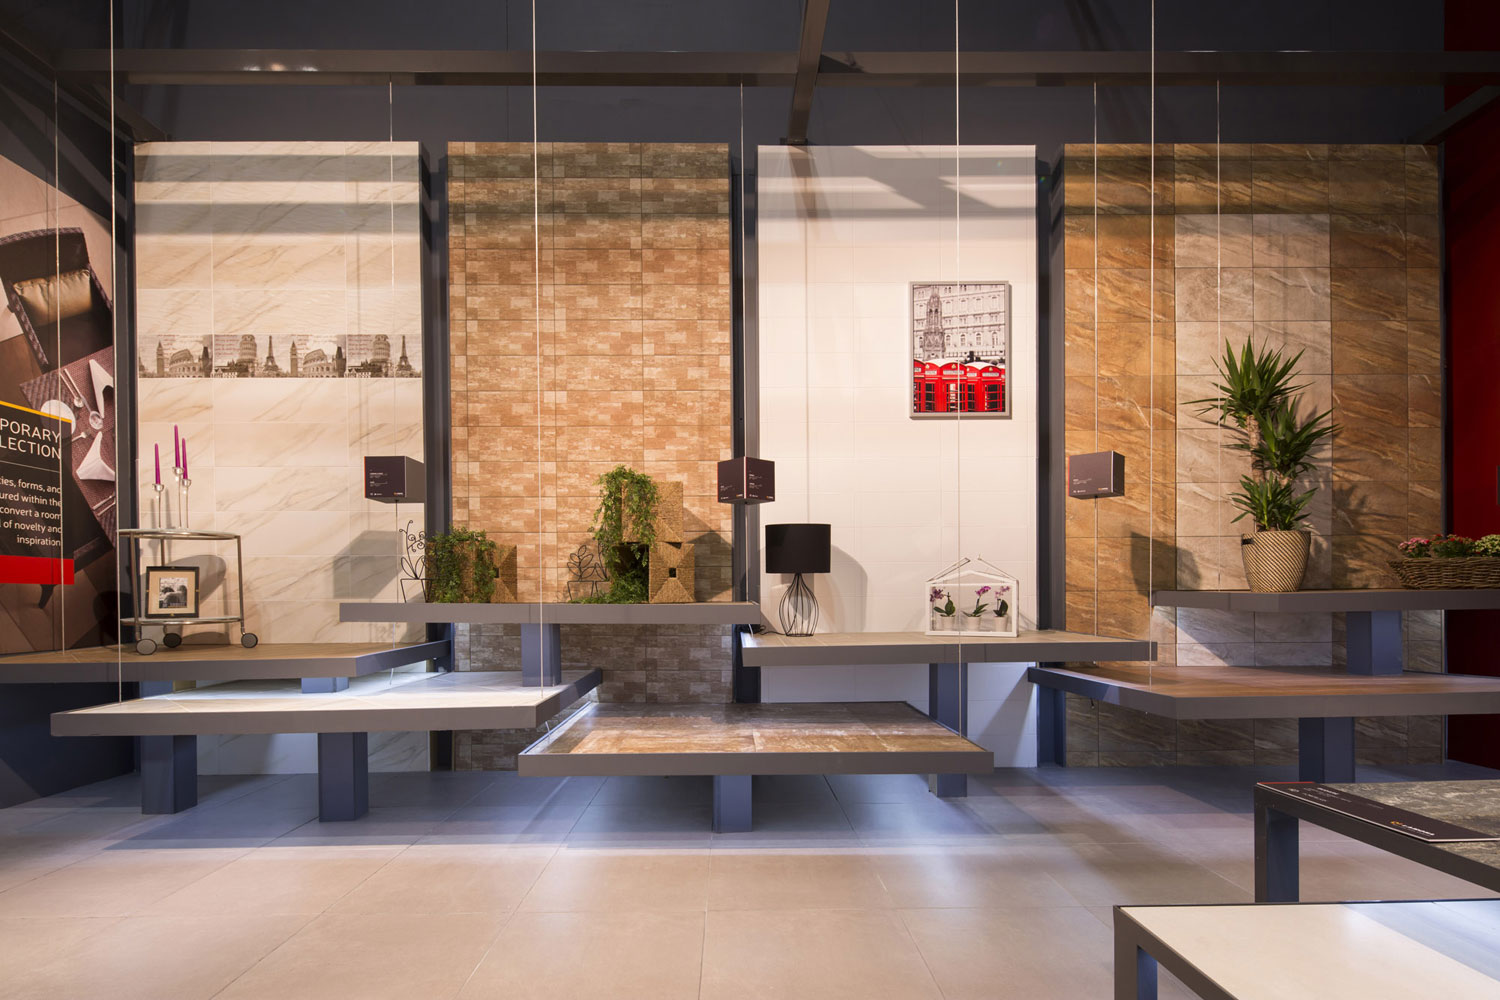 Stand porcelanite lamosa en coverings 2015 local 10 for Local arquitectura